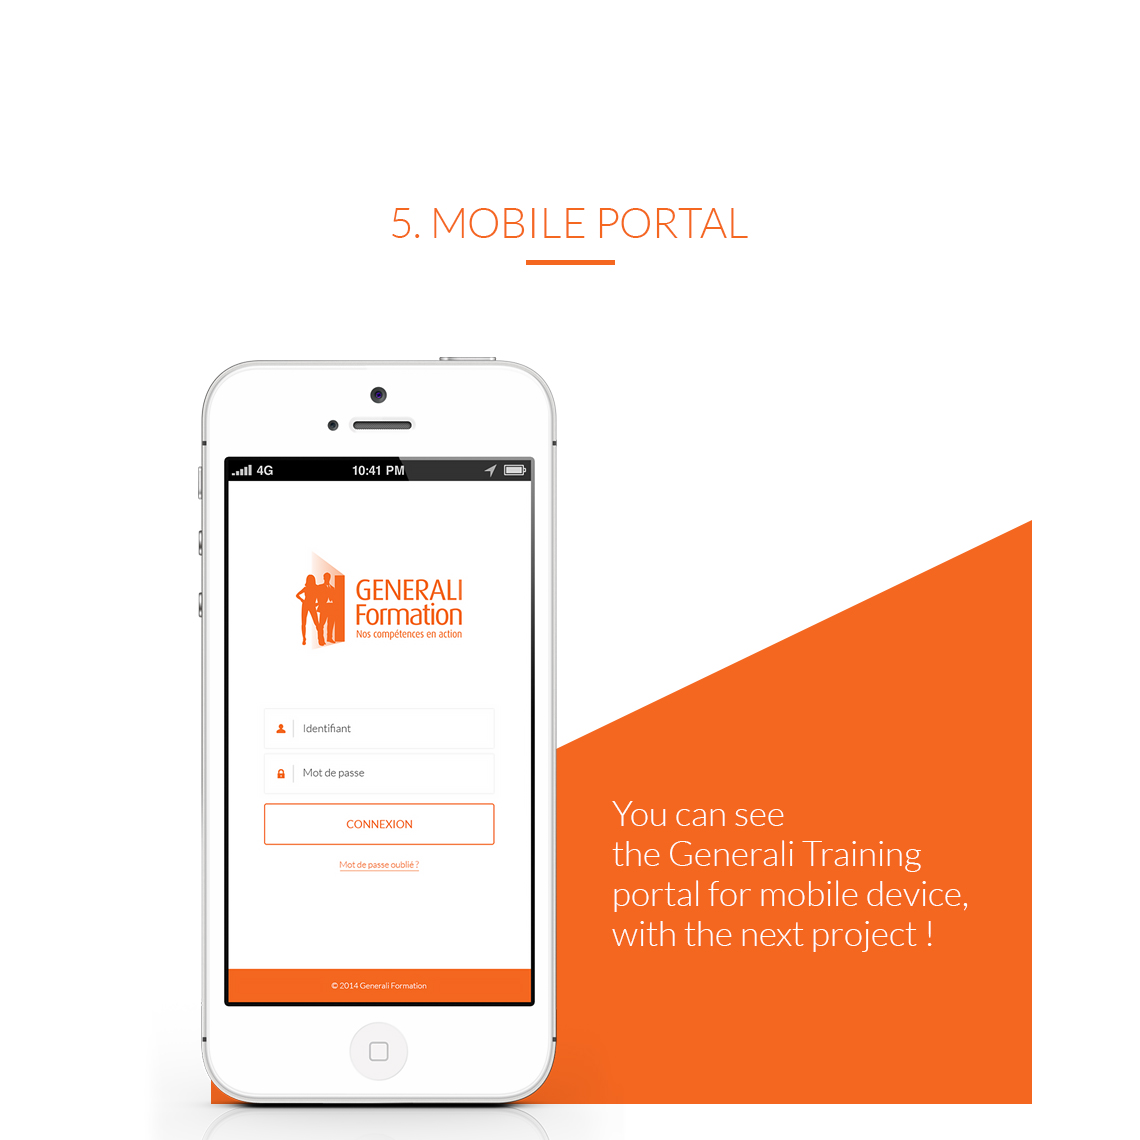 Portal for mobile device